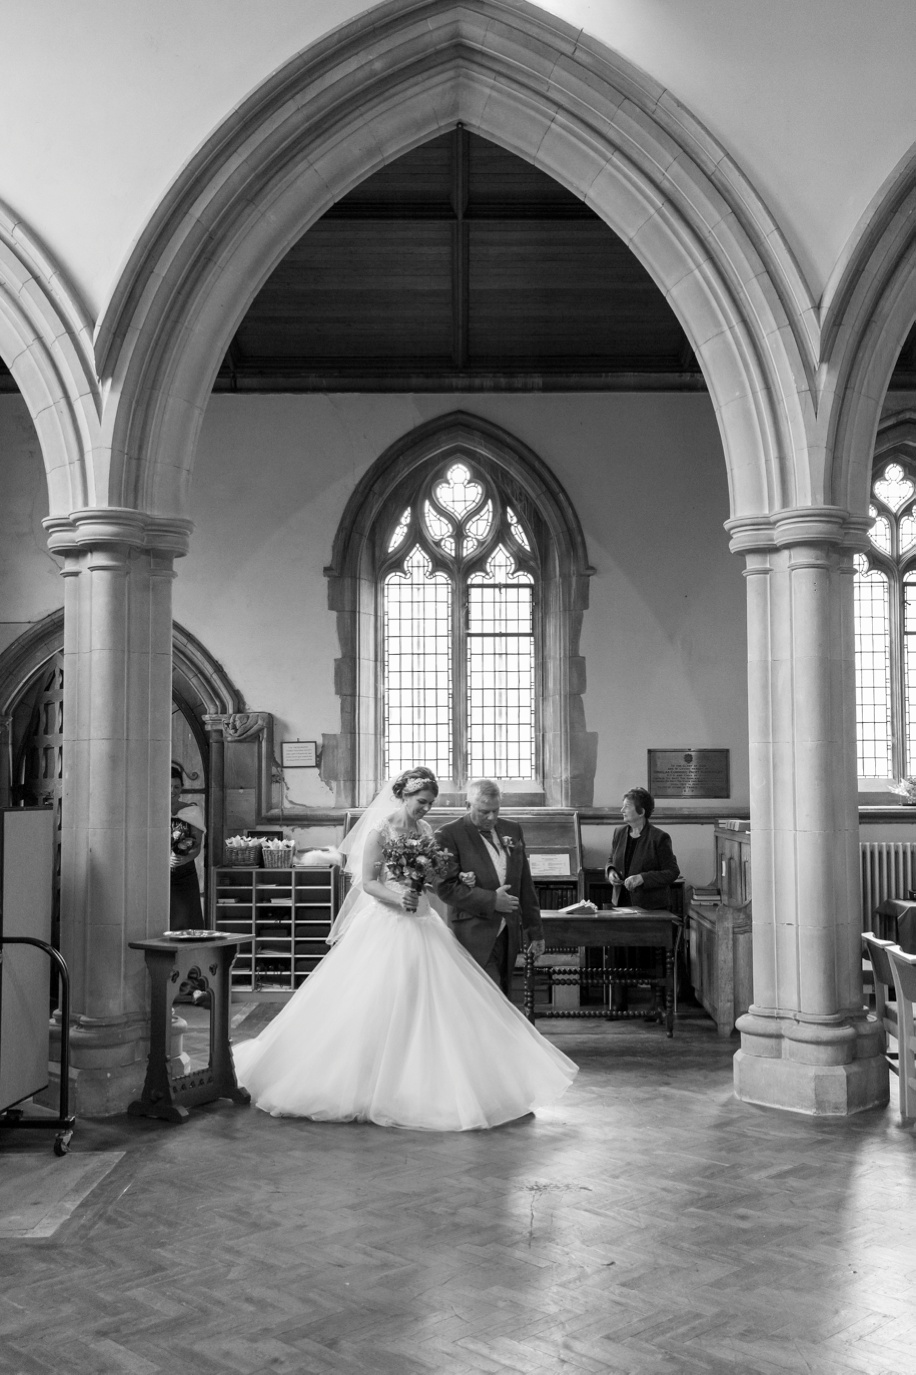 Wedding photographer Hampshire - St Thomas All Saints Church, Lyminton wedding - Bride walking down the aisle